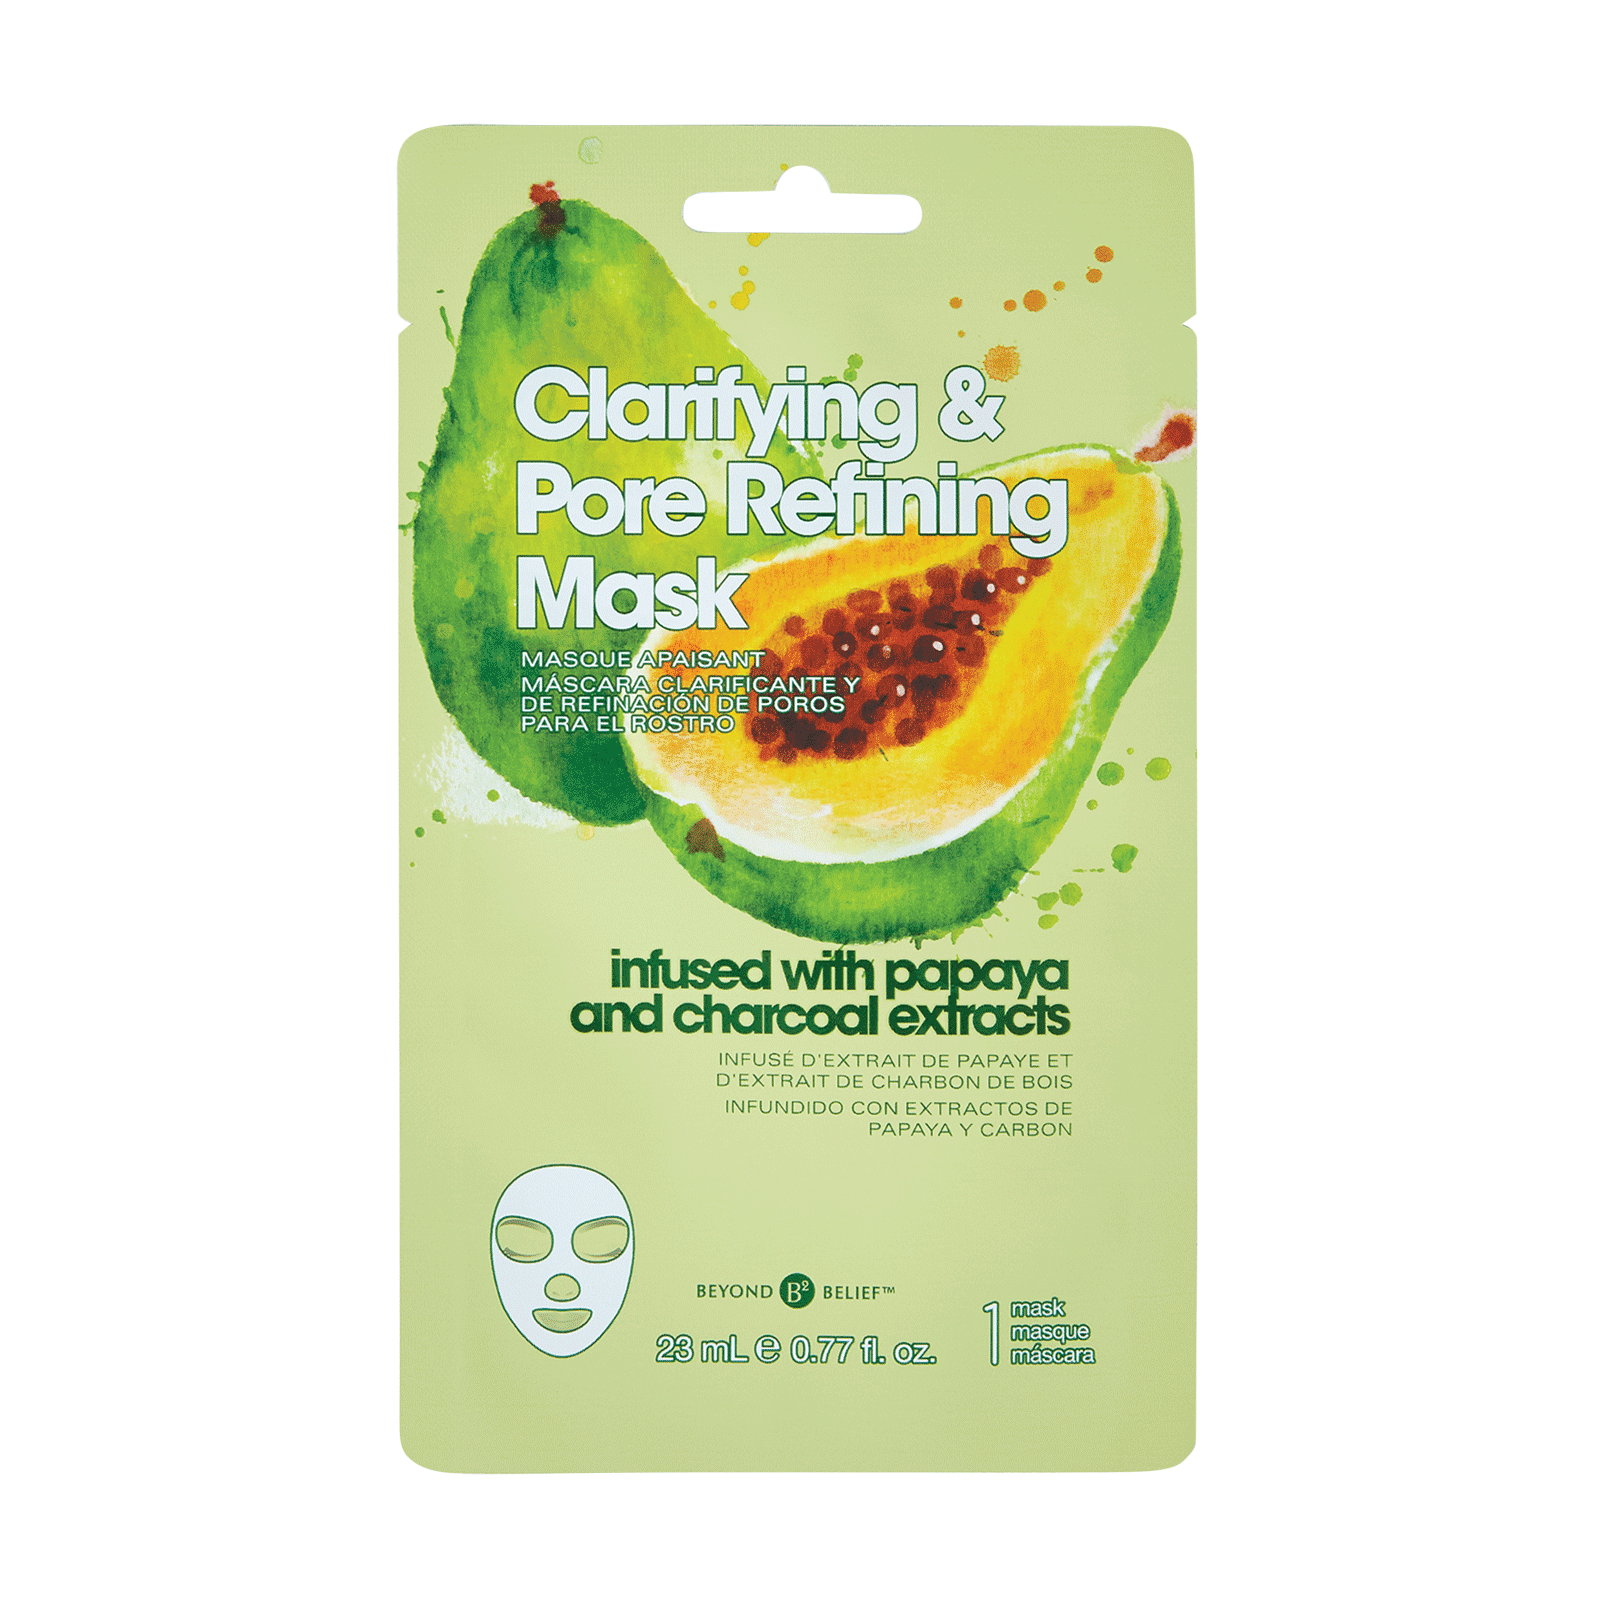 Clarifying and Pore Refining Mask